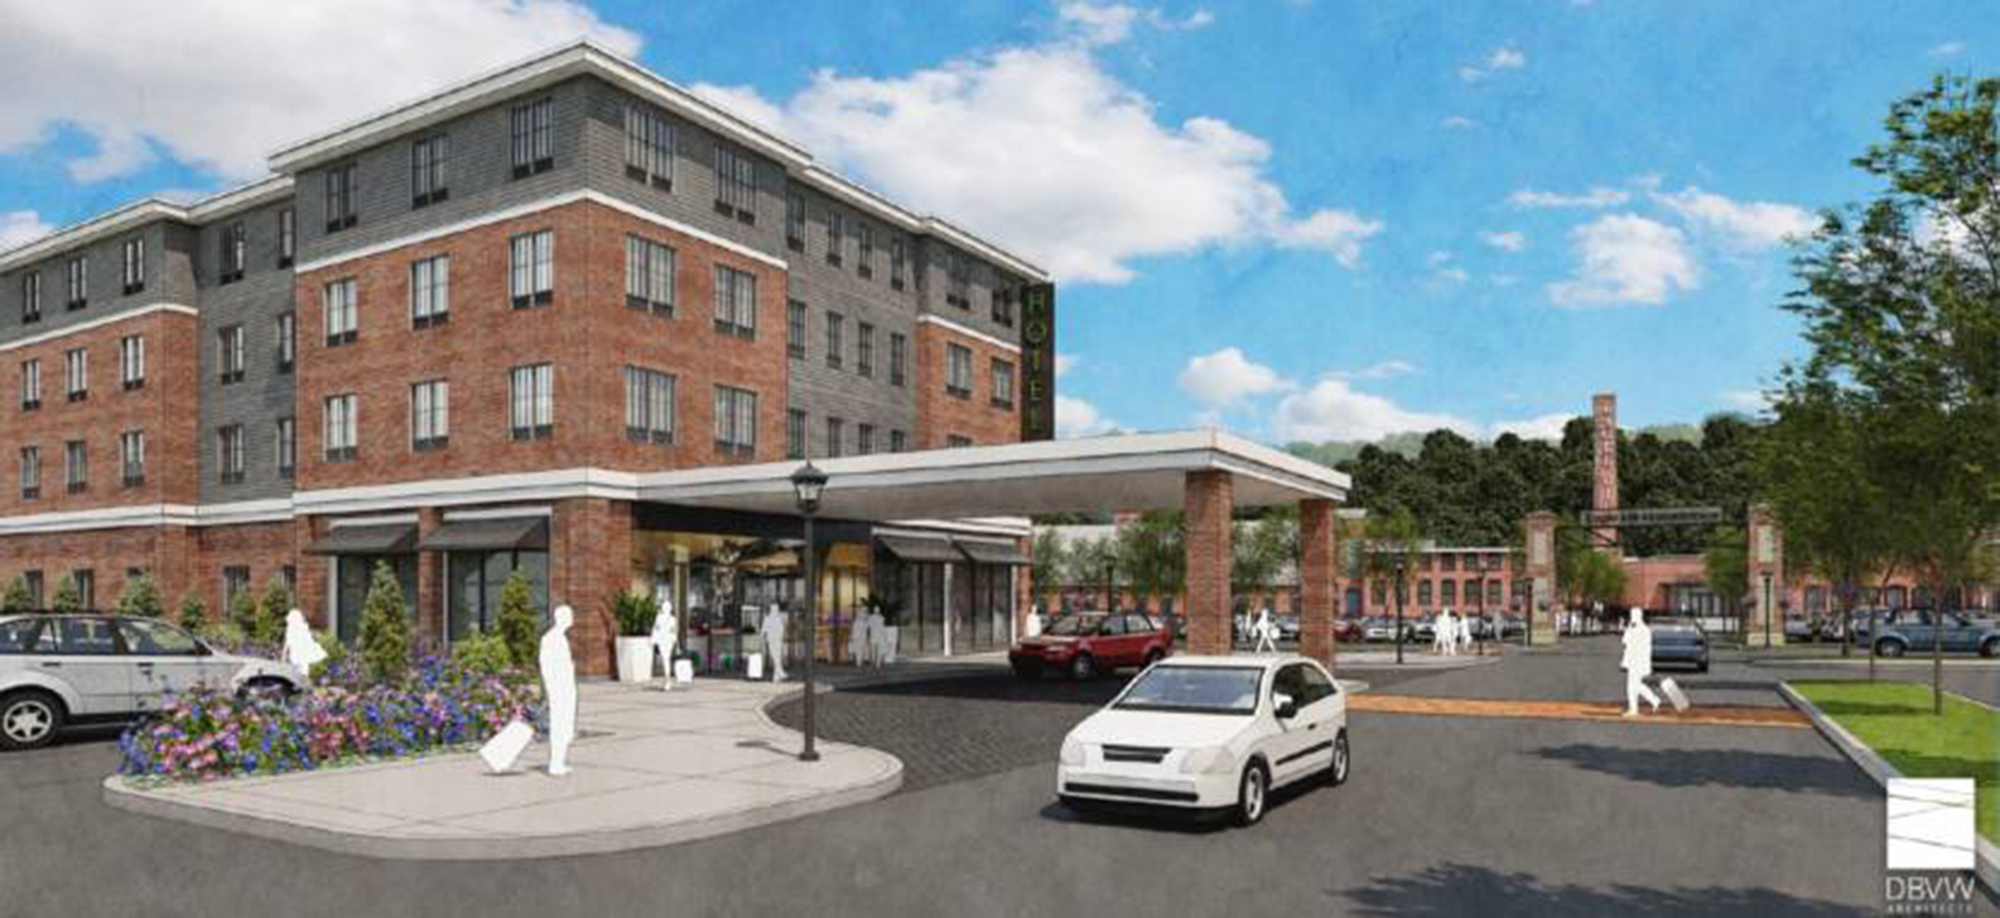 The proposed relocated hotel as envisioned for the Eagle Mill redevelopment project in downtown Lee.